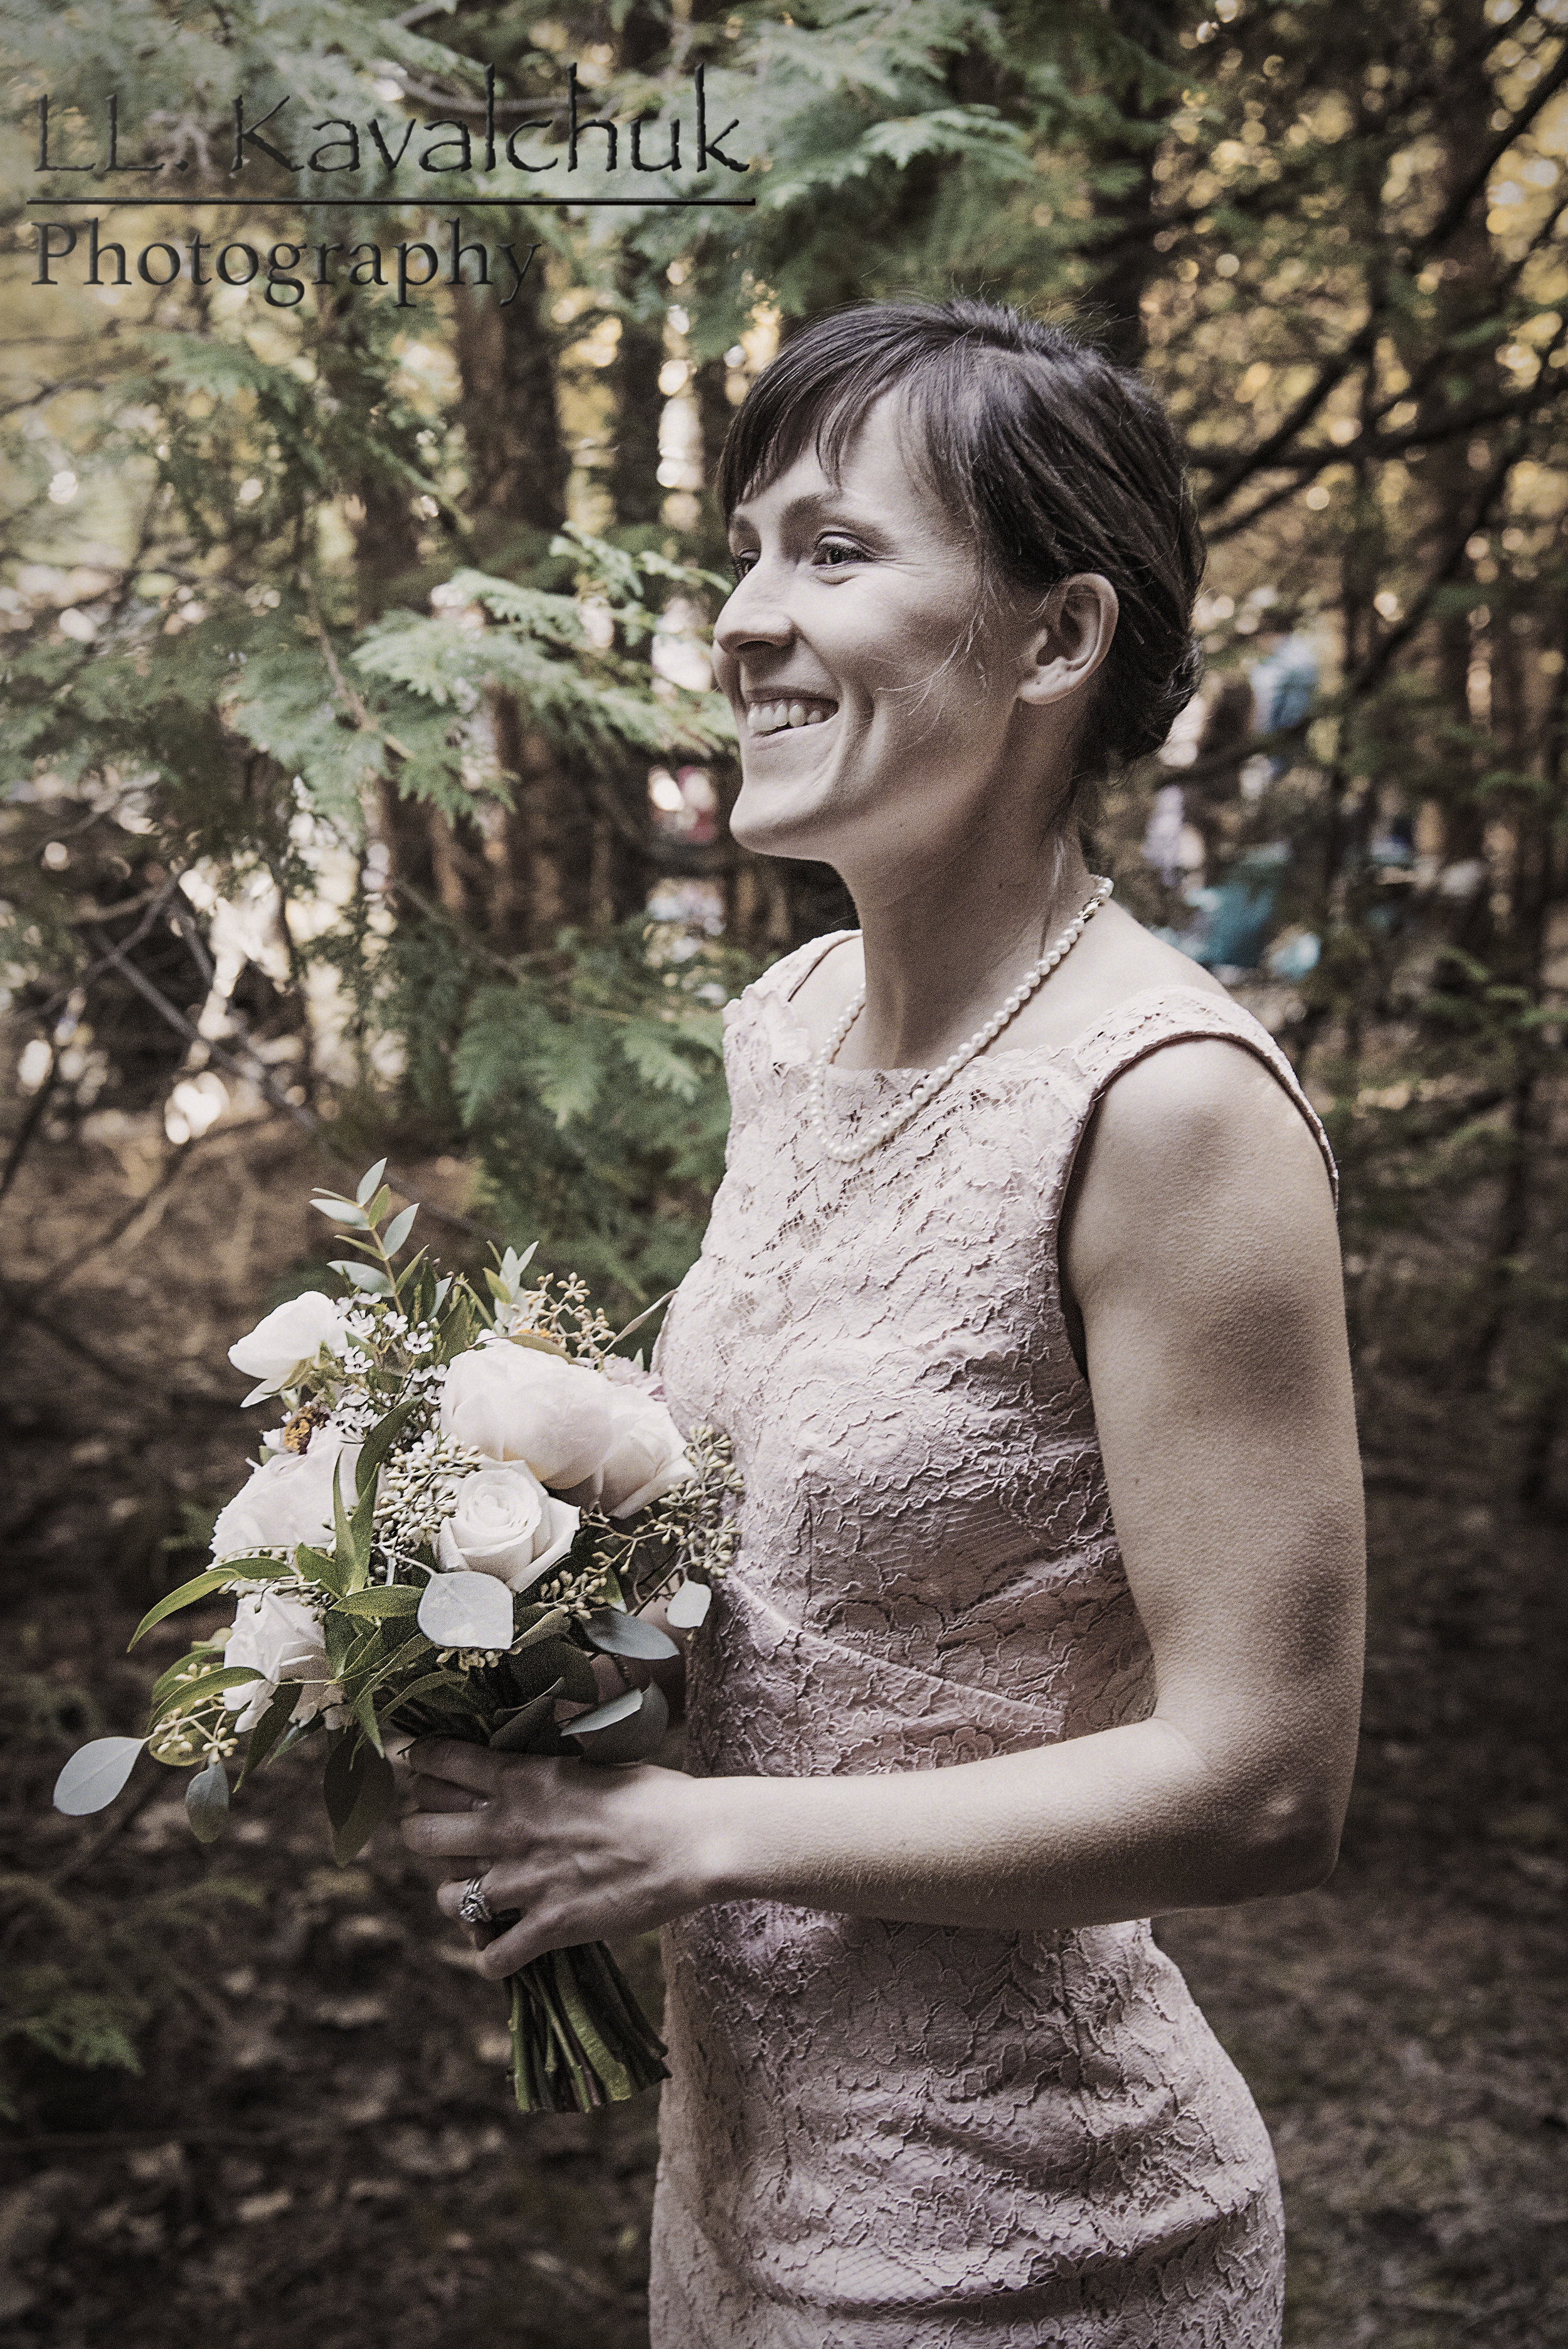 Banfield-Walcott Wedding - 24 SEP 2016 - 204 - It Begins (WM).JPG